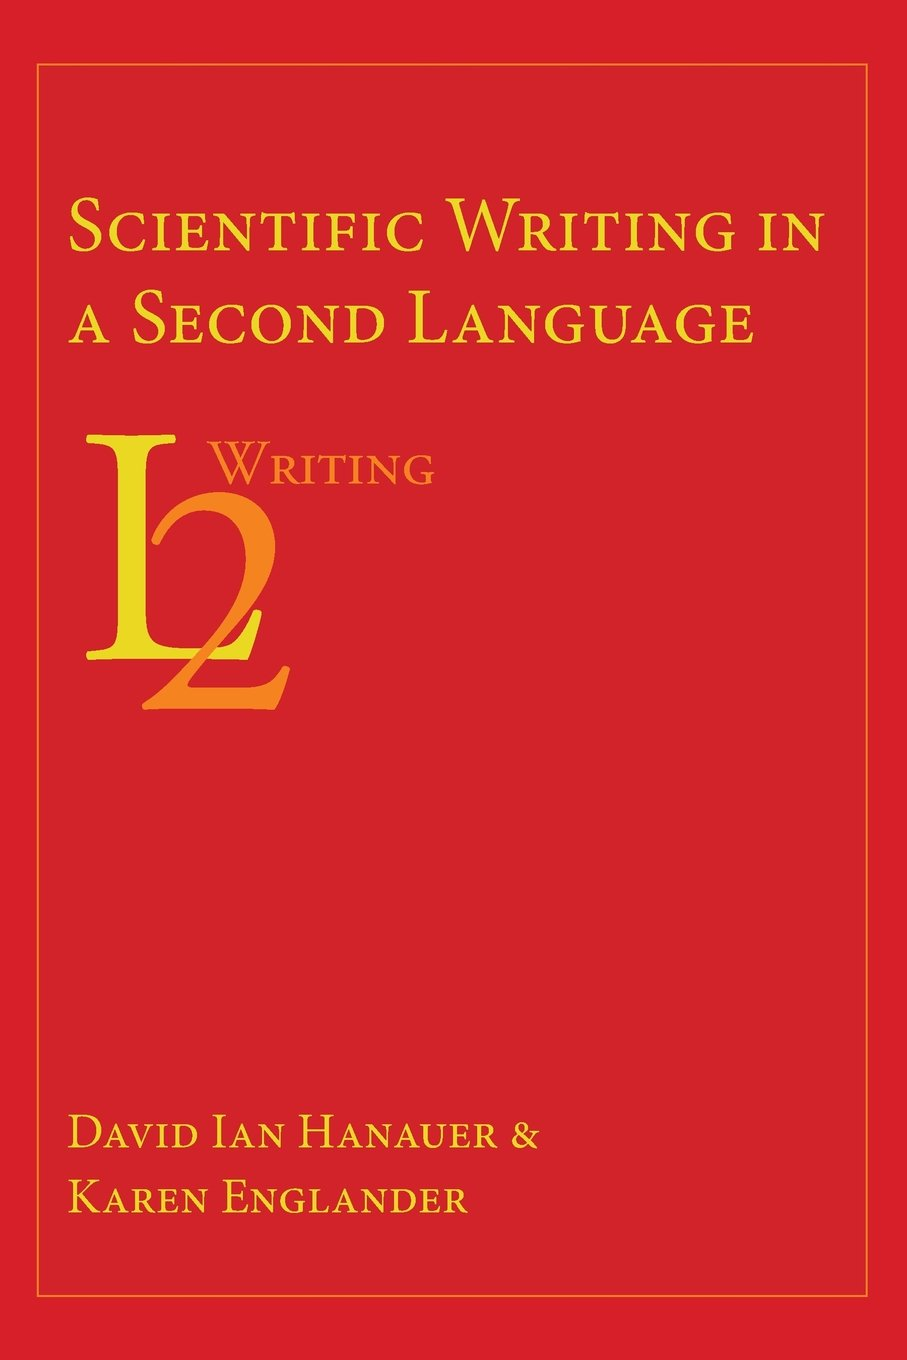 Scientific Writing in a Second Language (Second Language Writing) by Parlor Press